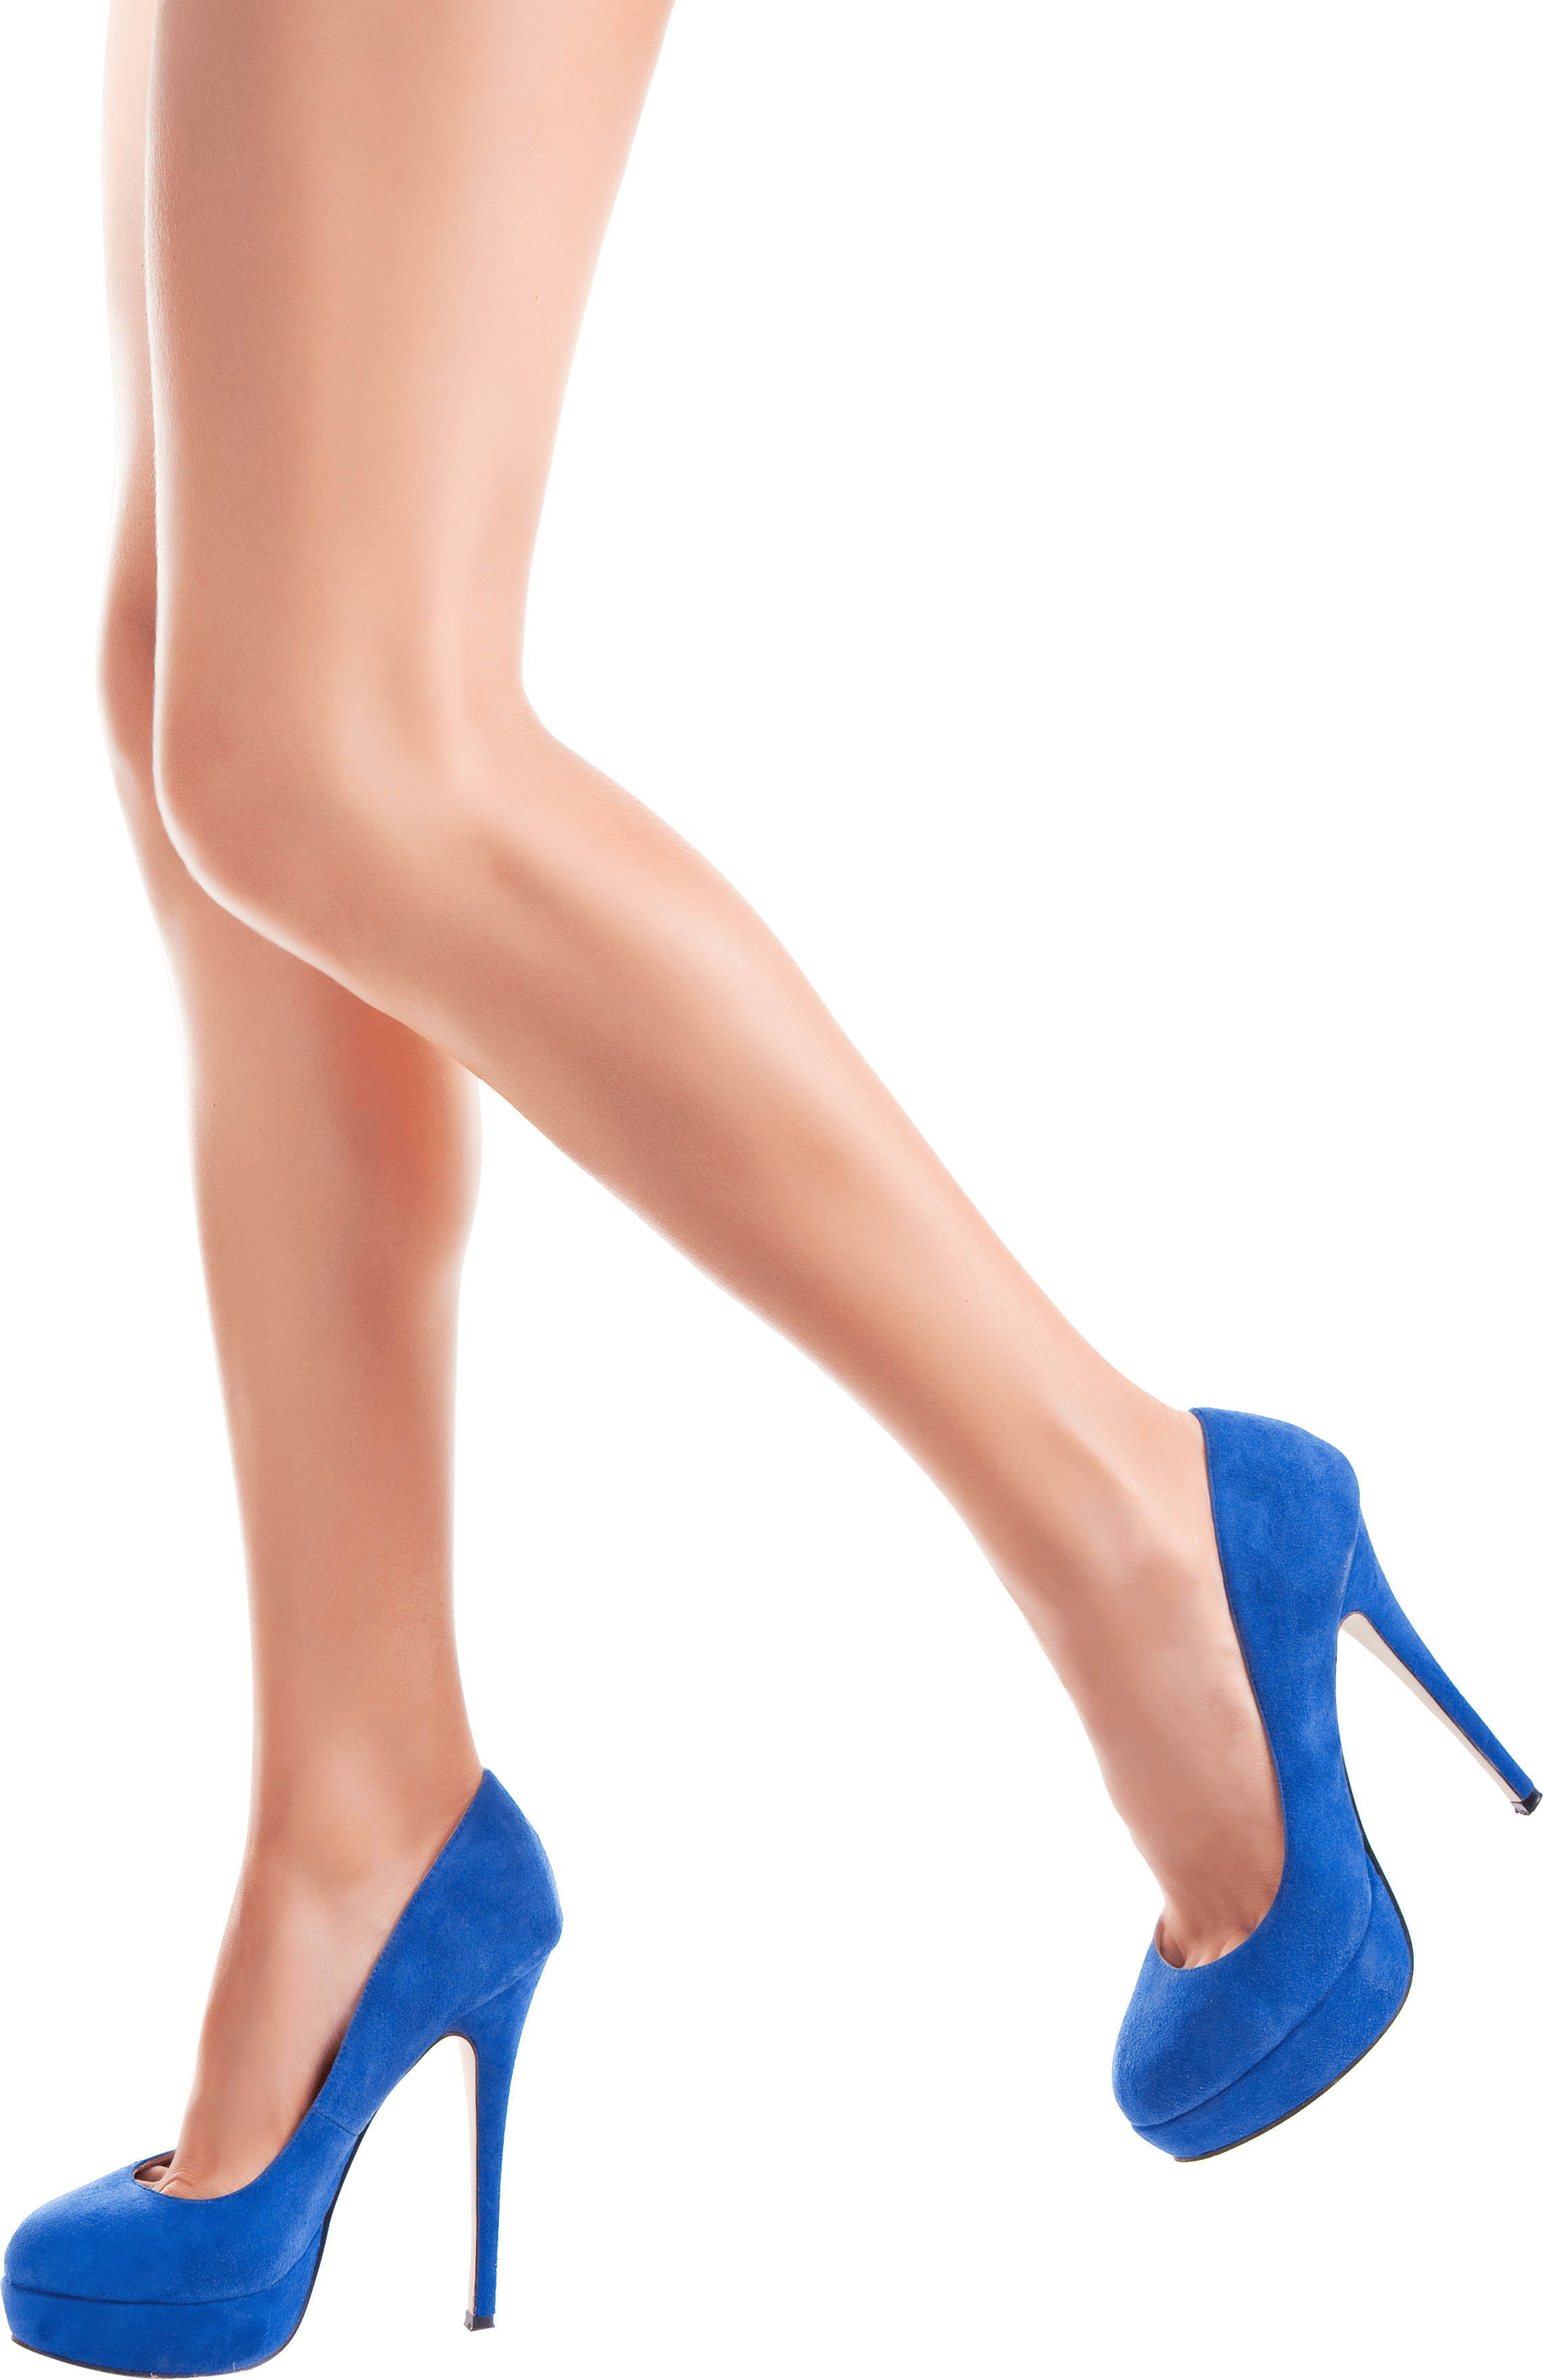 PNG File Name: Female Leg PlusPng.com  - Legs PNG